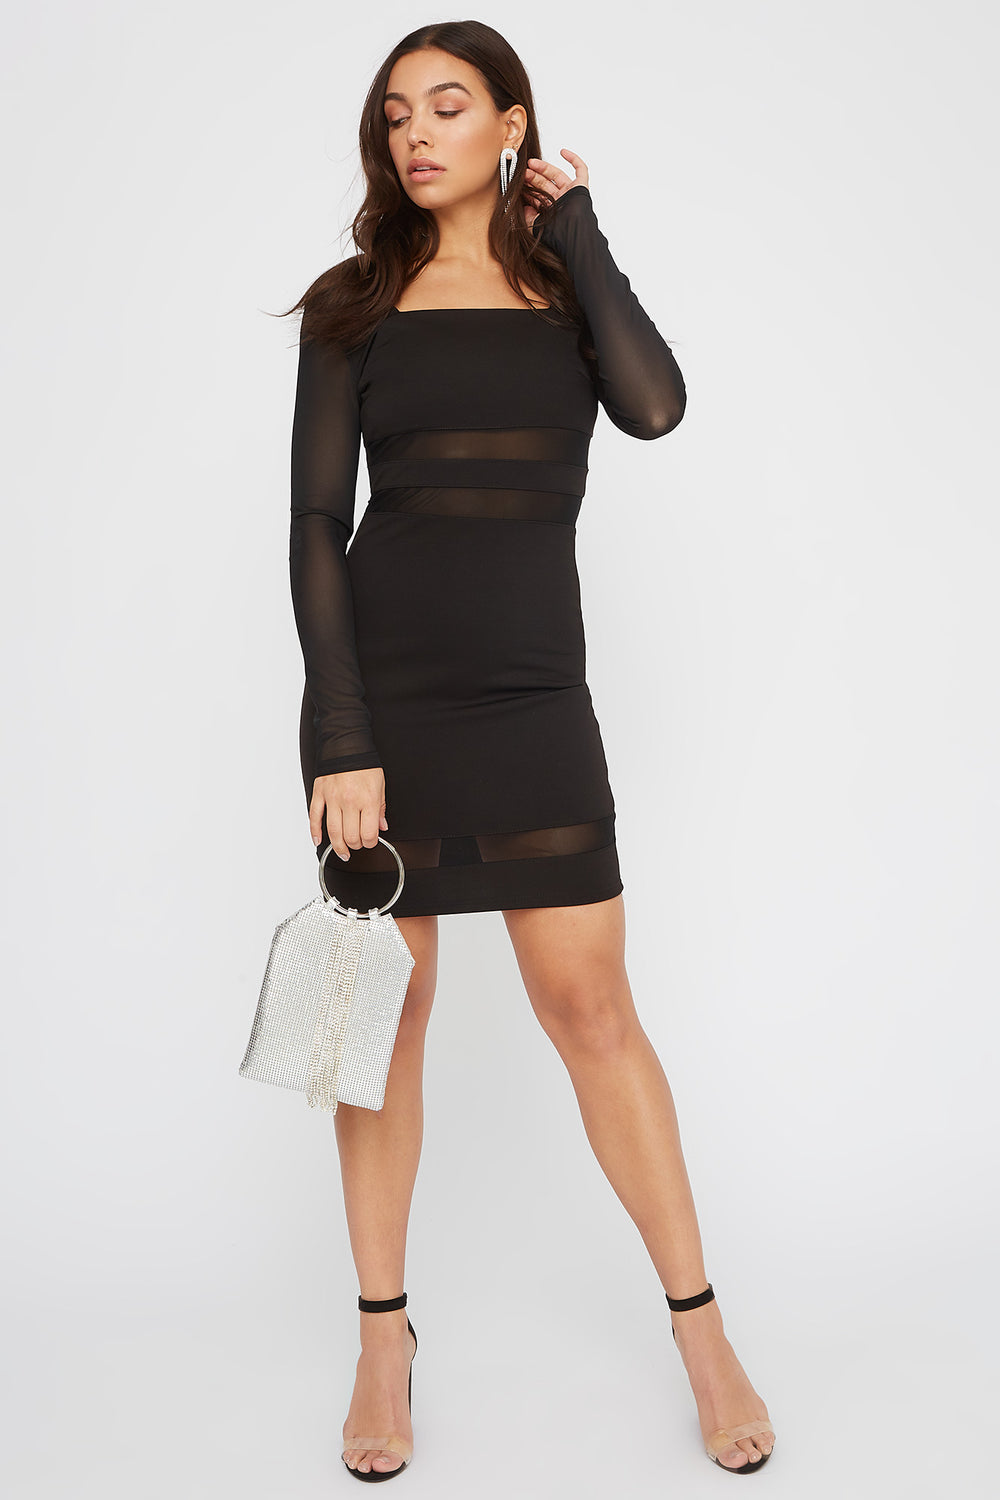 Square Neck Mesh Panel Mini Dress Black